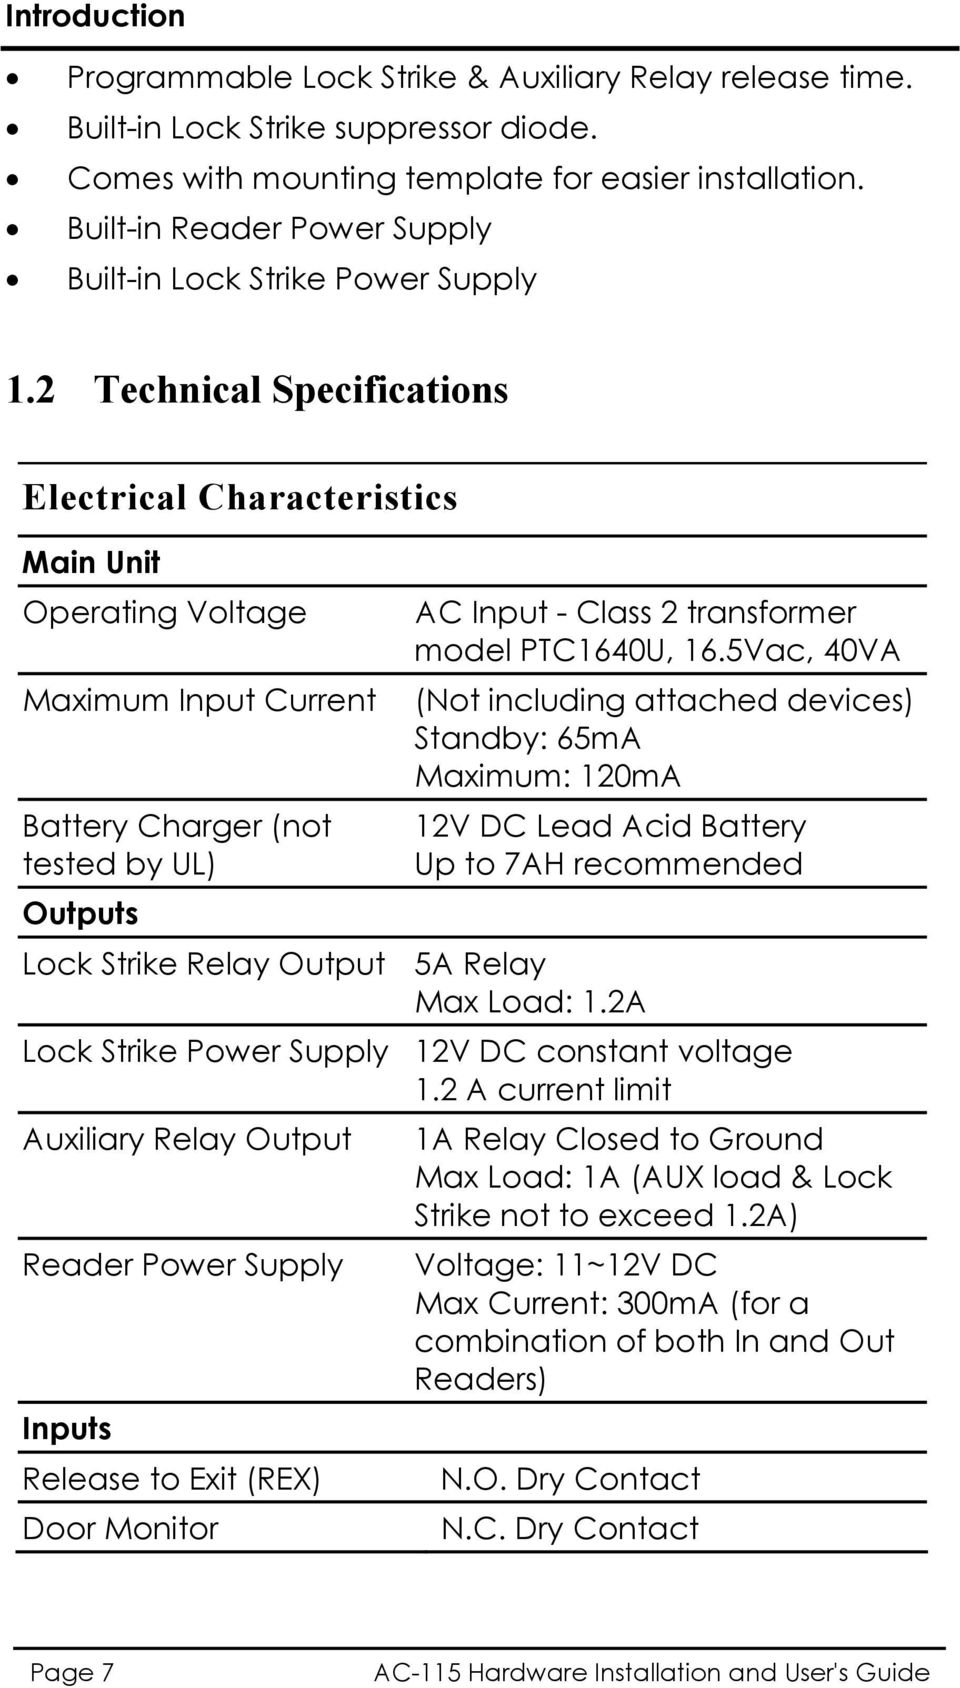 2 Technical Specifications Electrical Characteristics Main Unit Operating Voltage Maximum Input Current Battery Charger (not tested by UL) Outputs AC Input - Class 2 transformer model PTC1640U, 16.